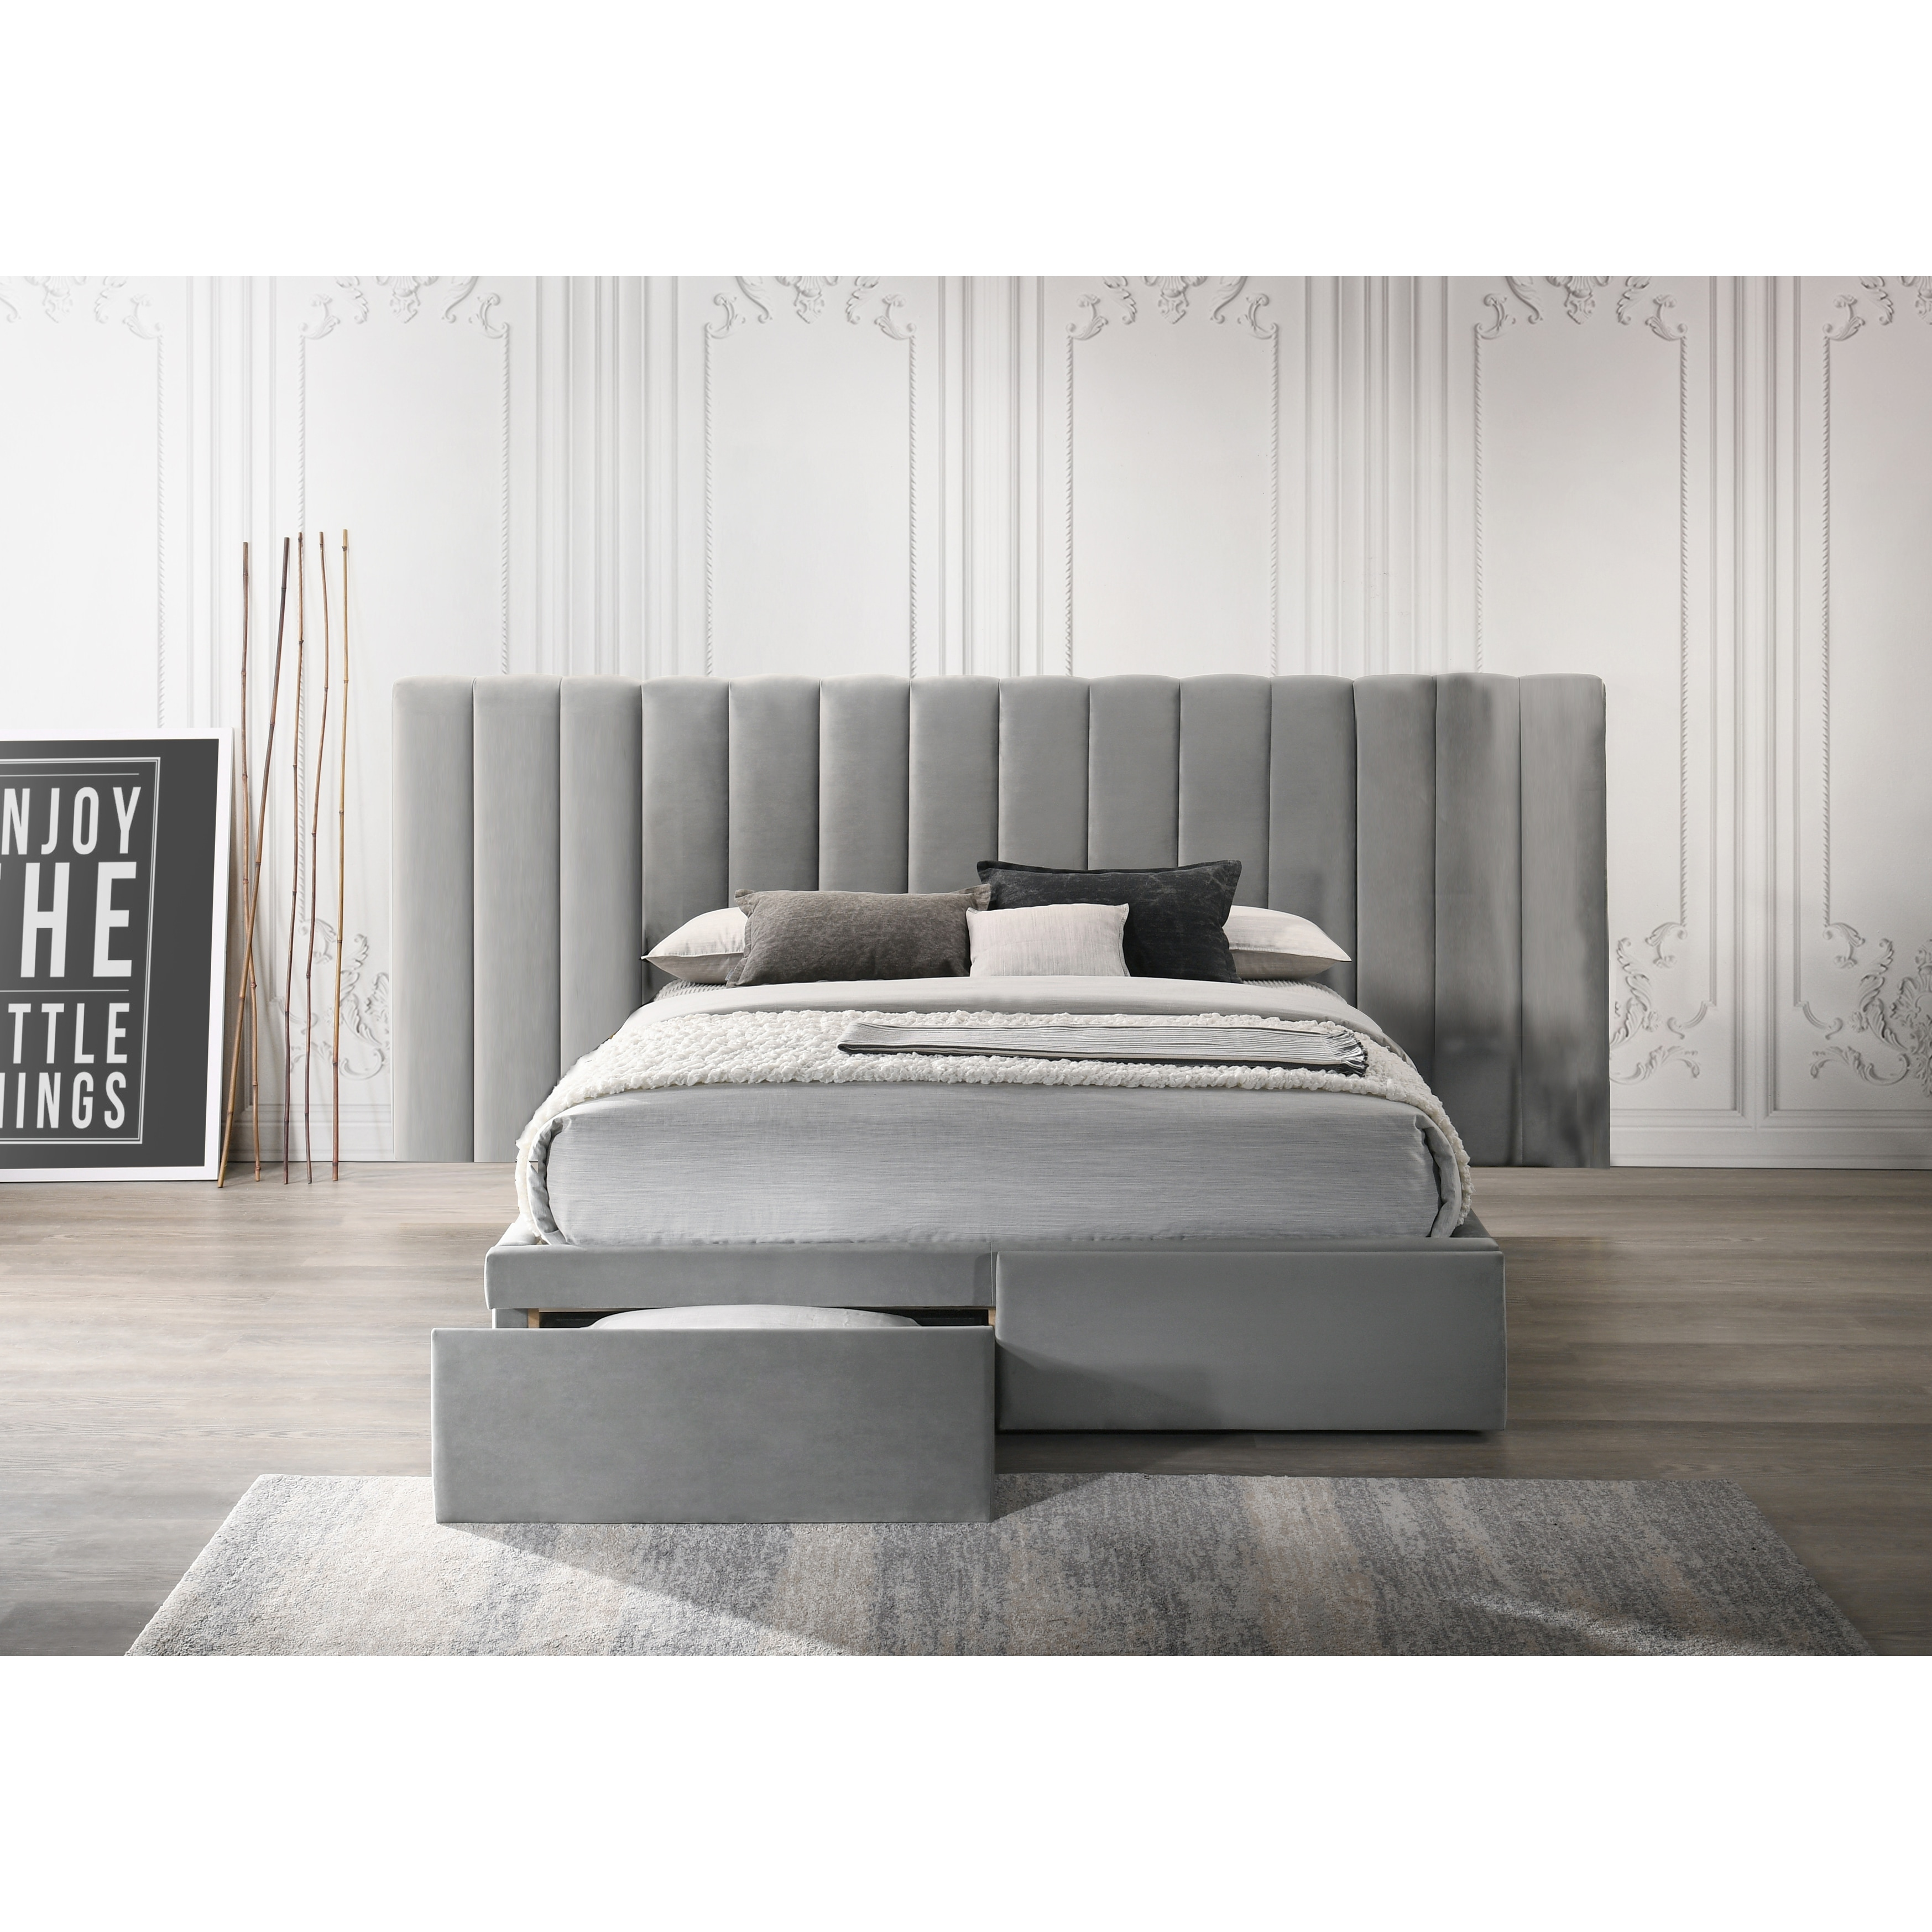 Faro Velvet Bed Frame With Extra Wide Headboard And Storage Overstock 31789786